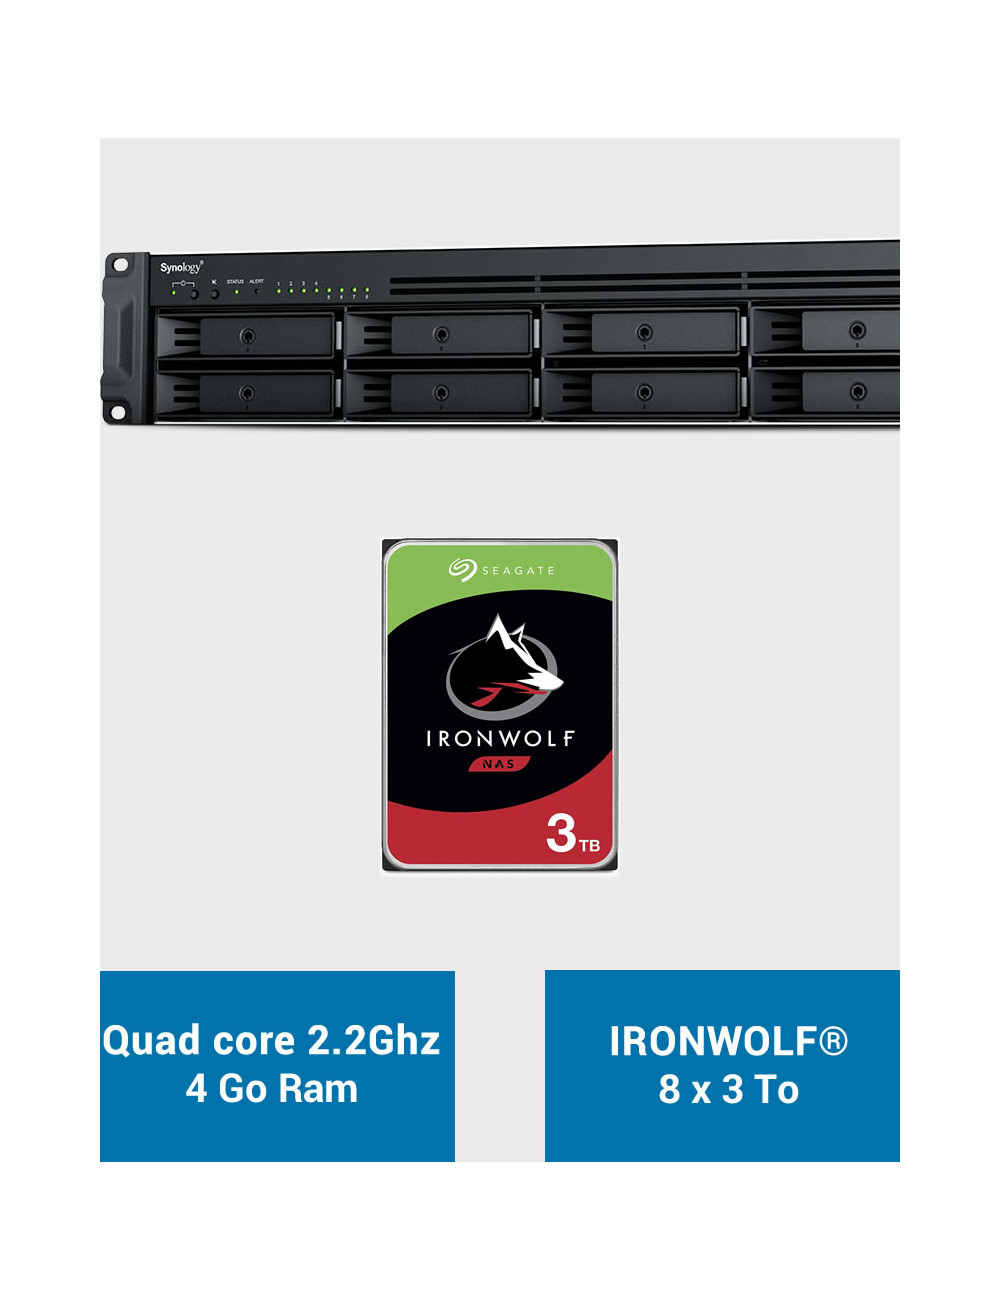 Synology RS1221+ Serveur NAS Rack IRONWOLF 24To (8x3To)